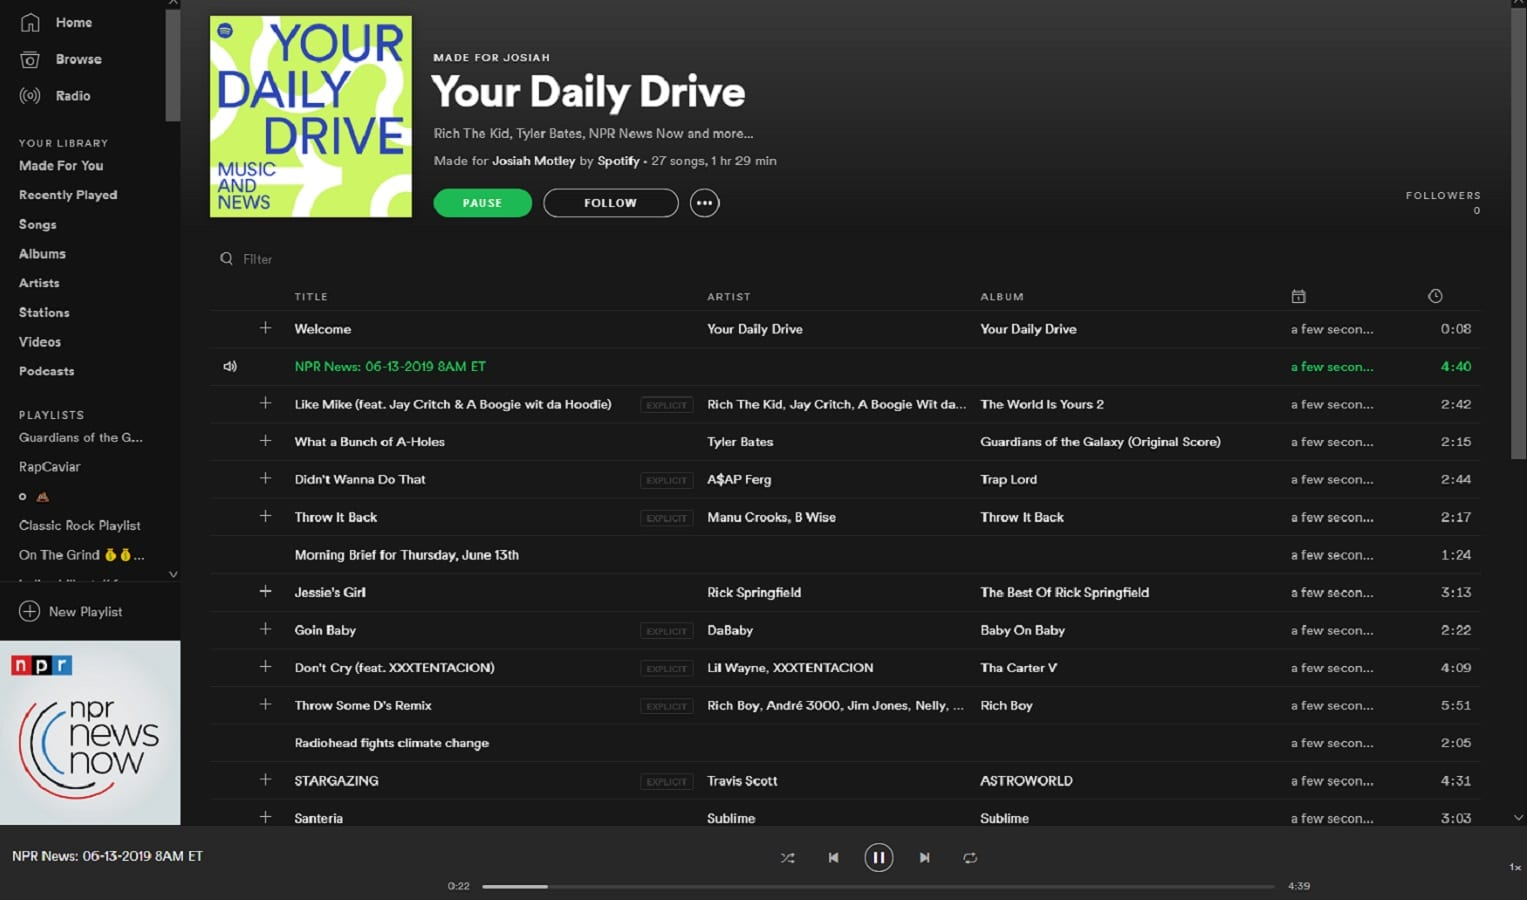 spotify the daily drive playlist